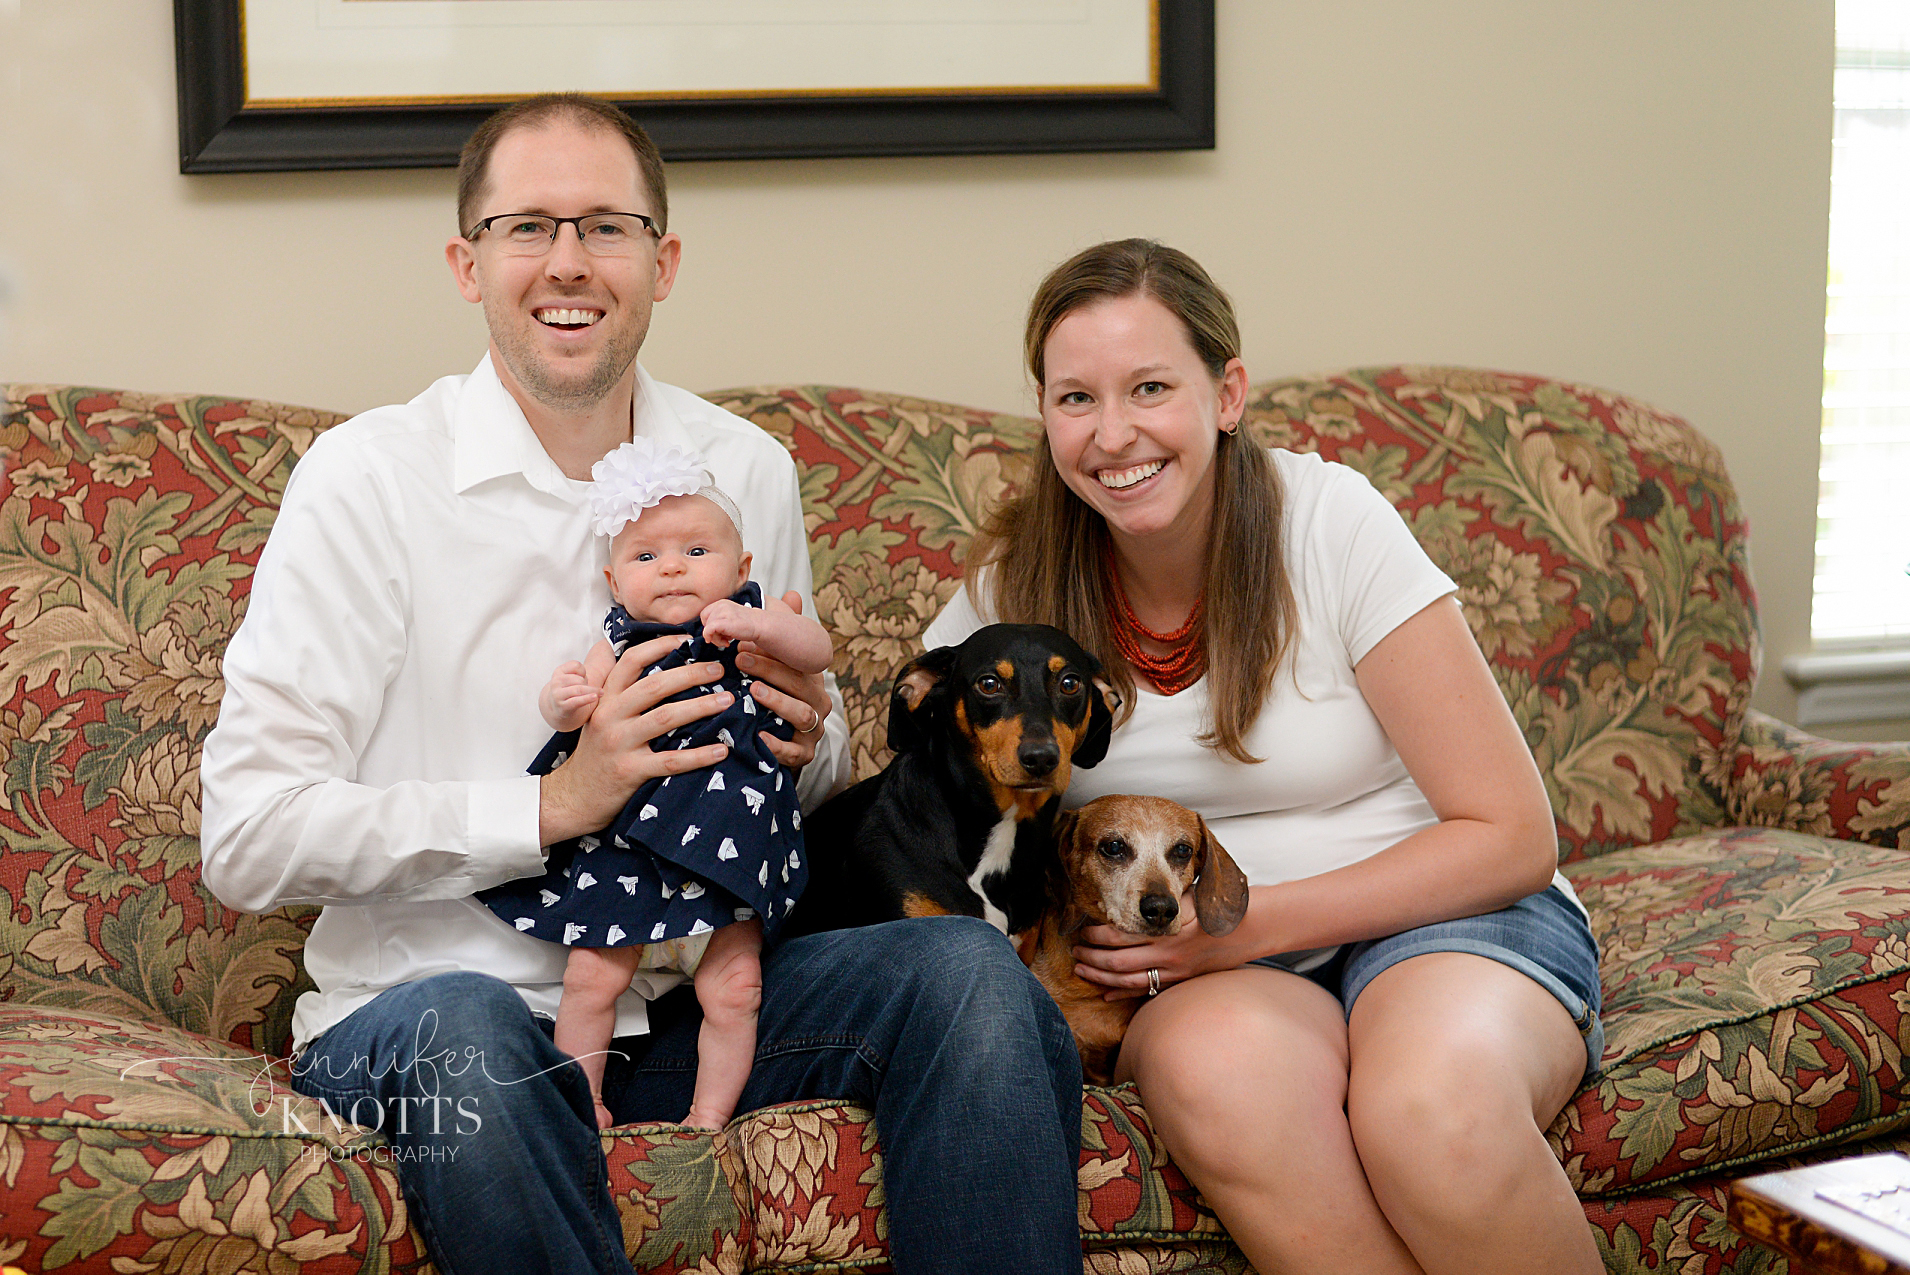 parents pose for photo with newborn daughter and two dogs on couch